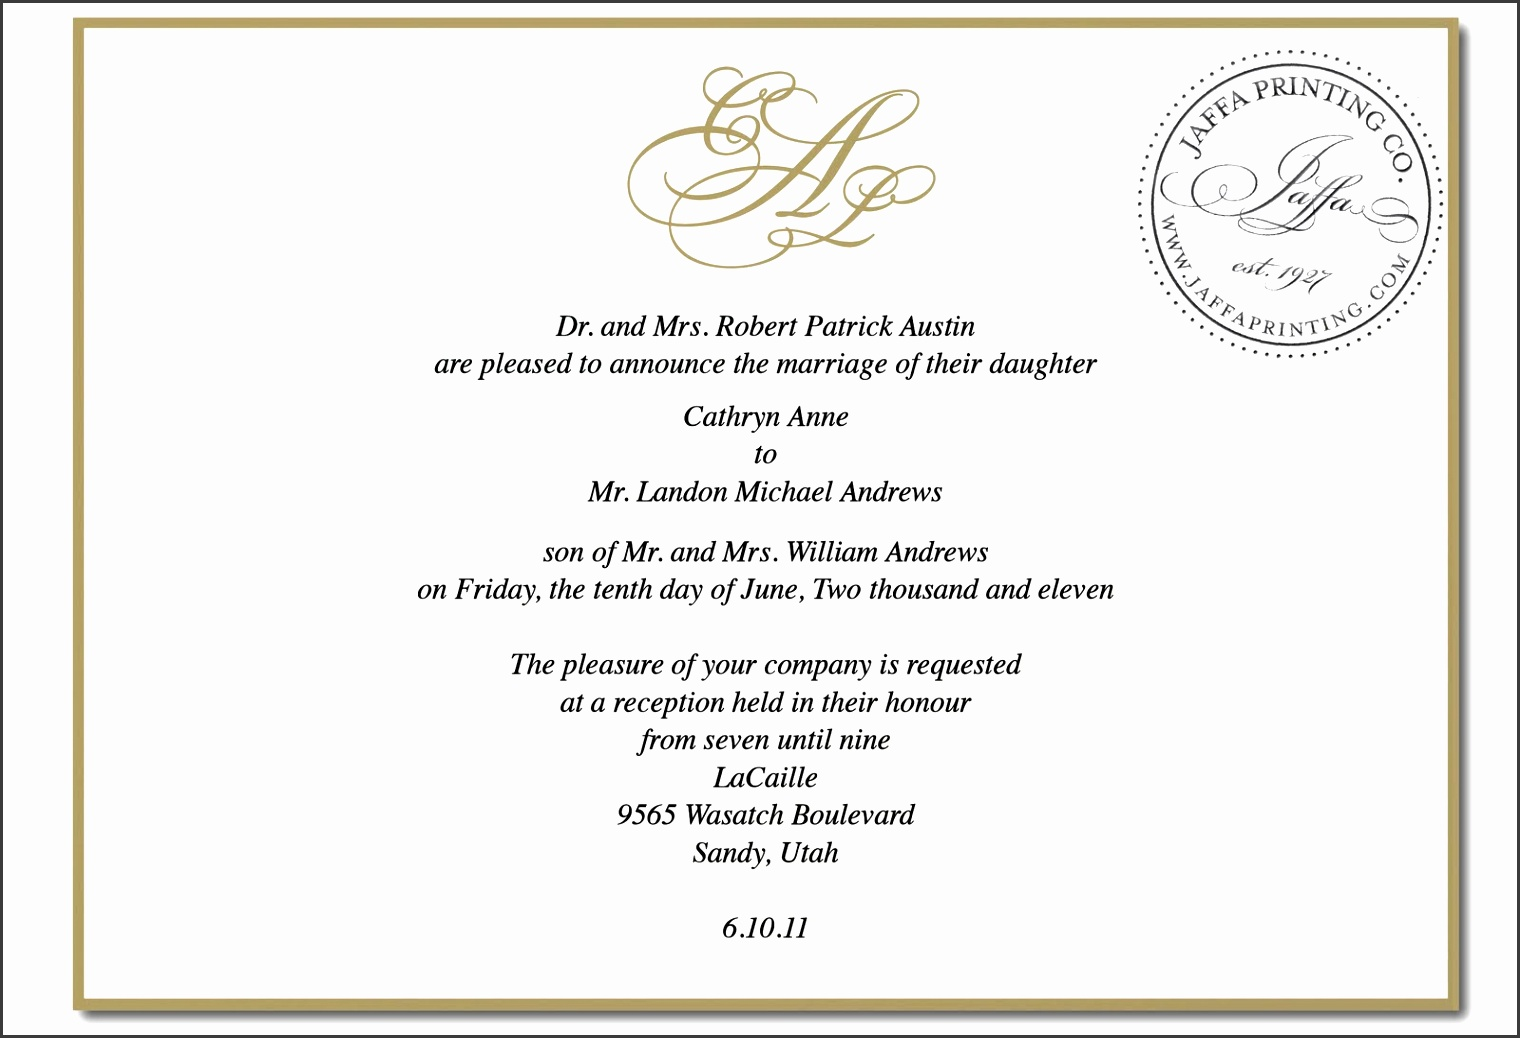 how to write a wedding invitation word templates for wedding invitations wedding invitation wording wedding invitations quotes wedding invitation etiquette wedding invitation wording funn